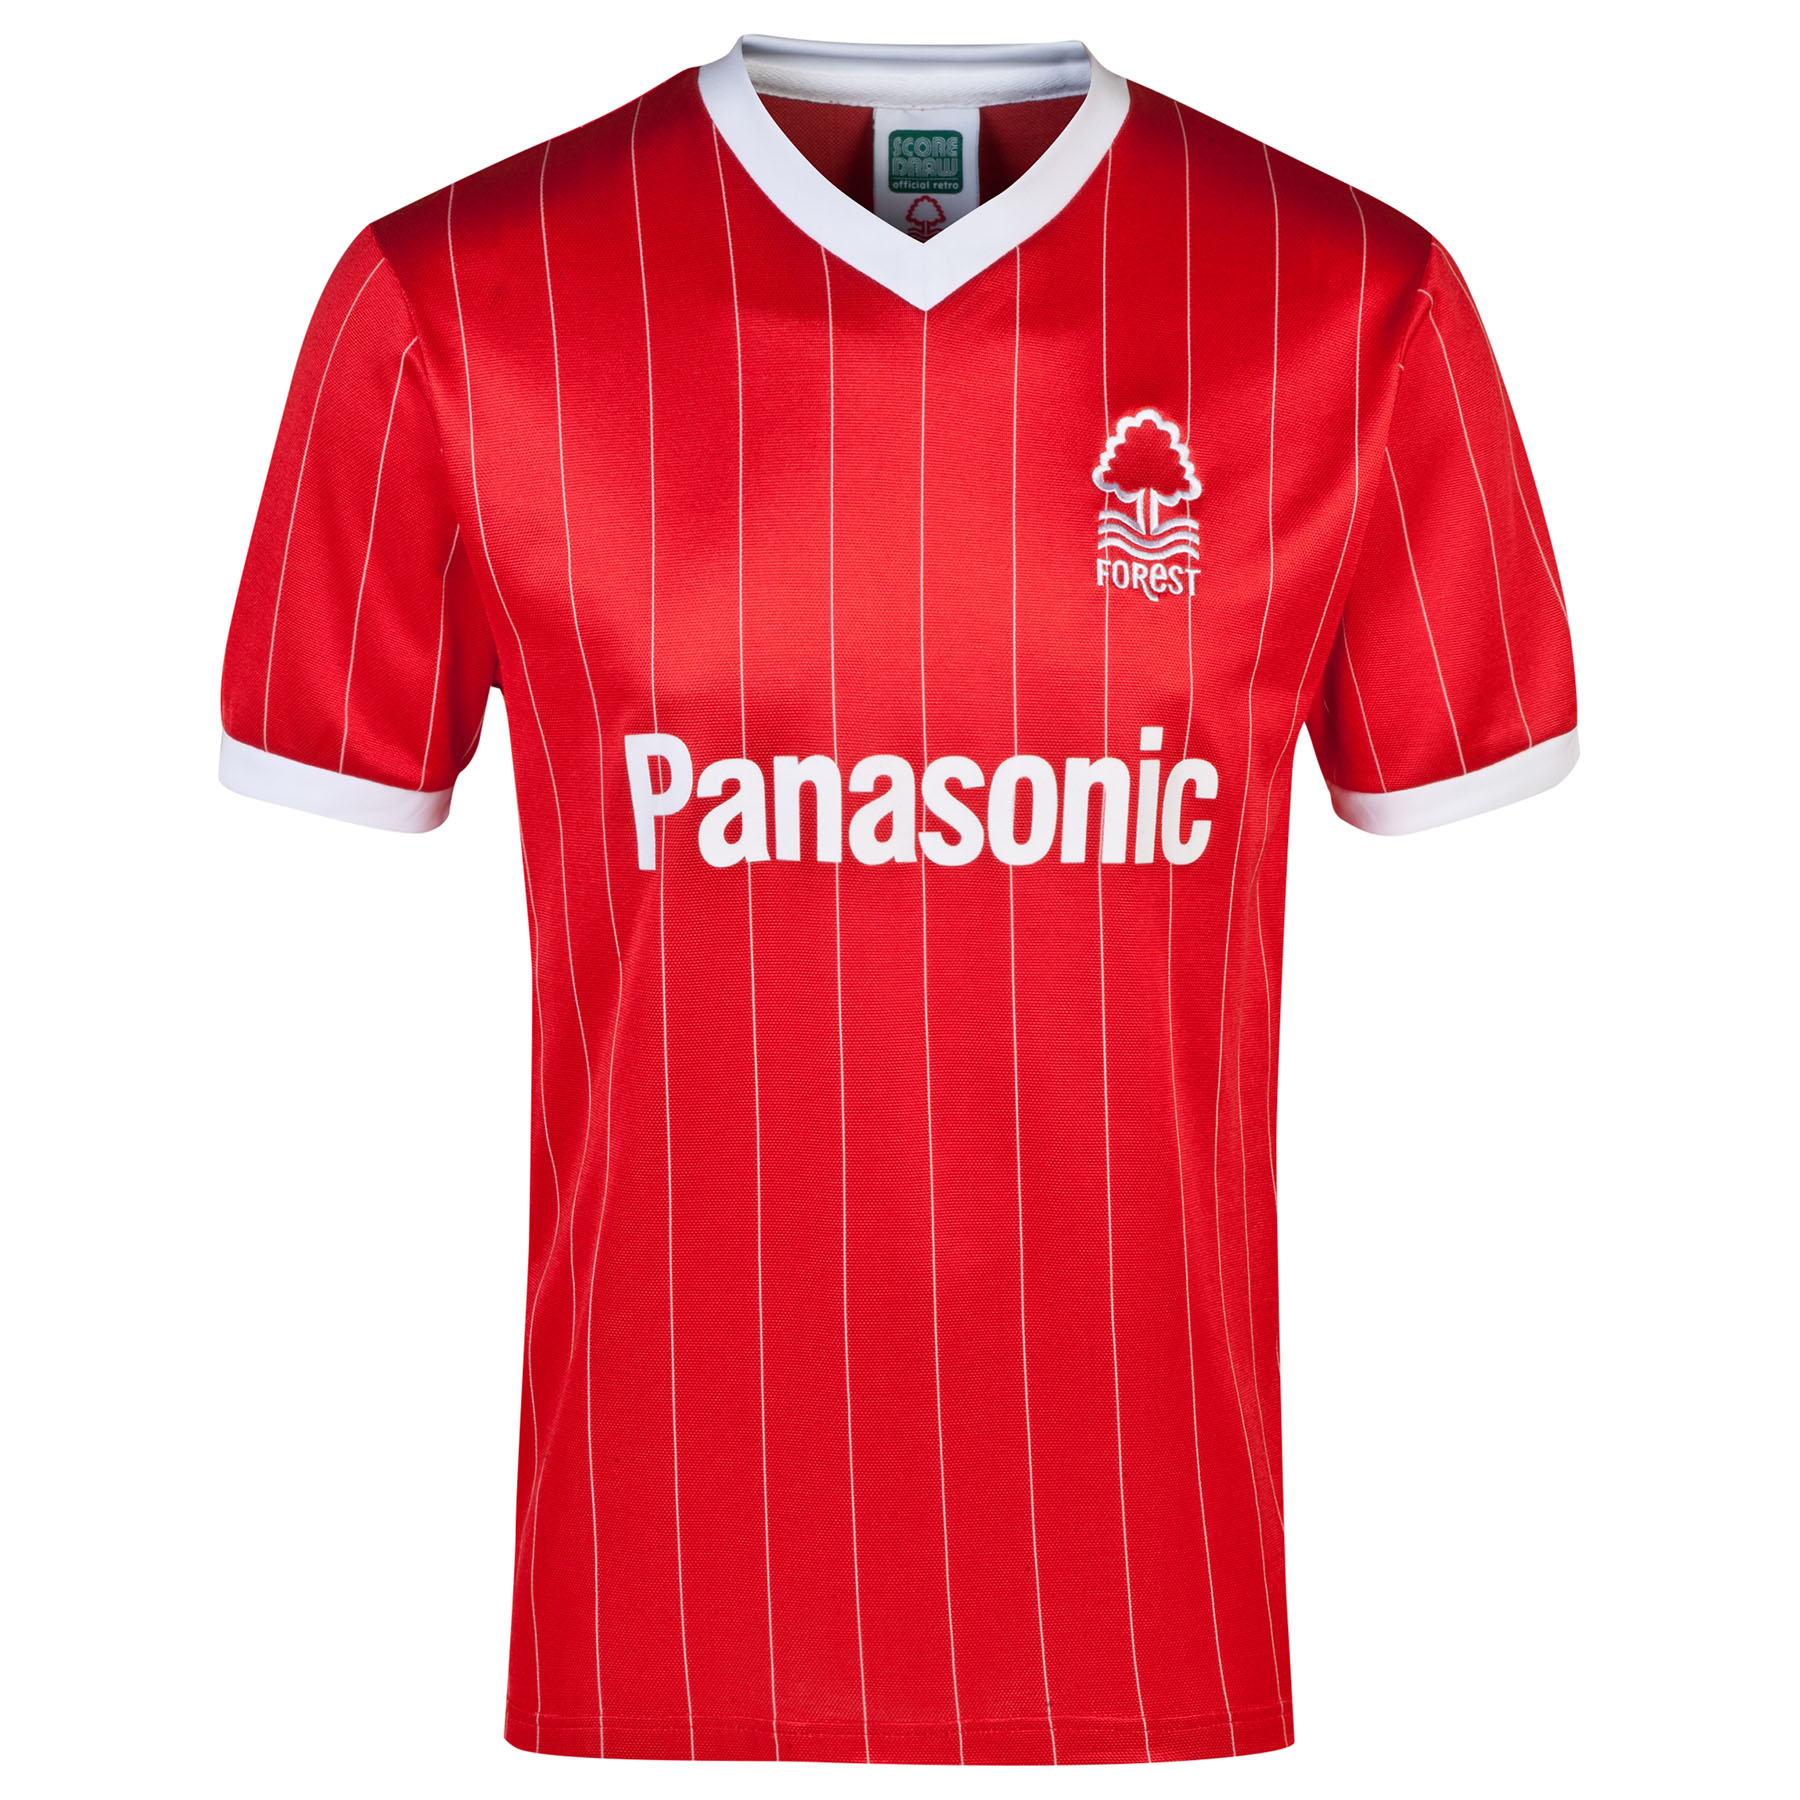 Nottingham Forest 1982 Home Shirt - Red